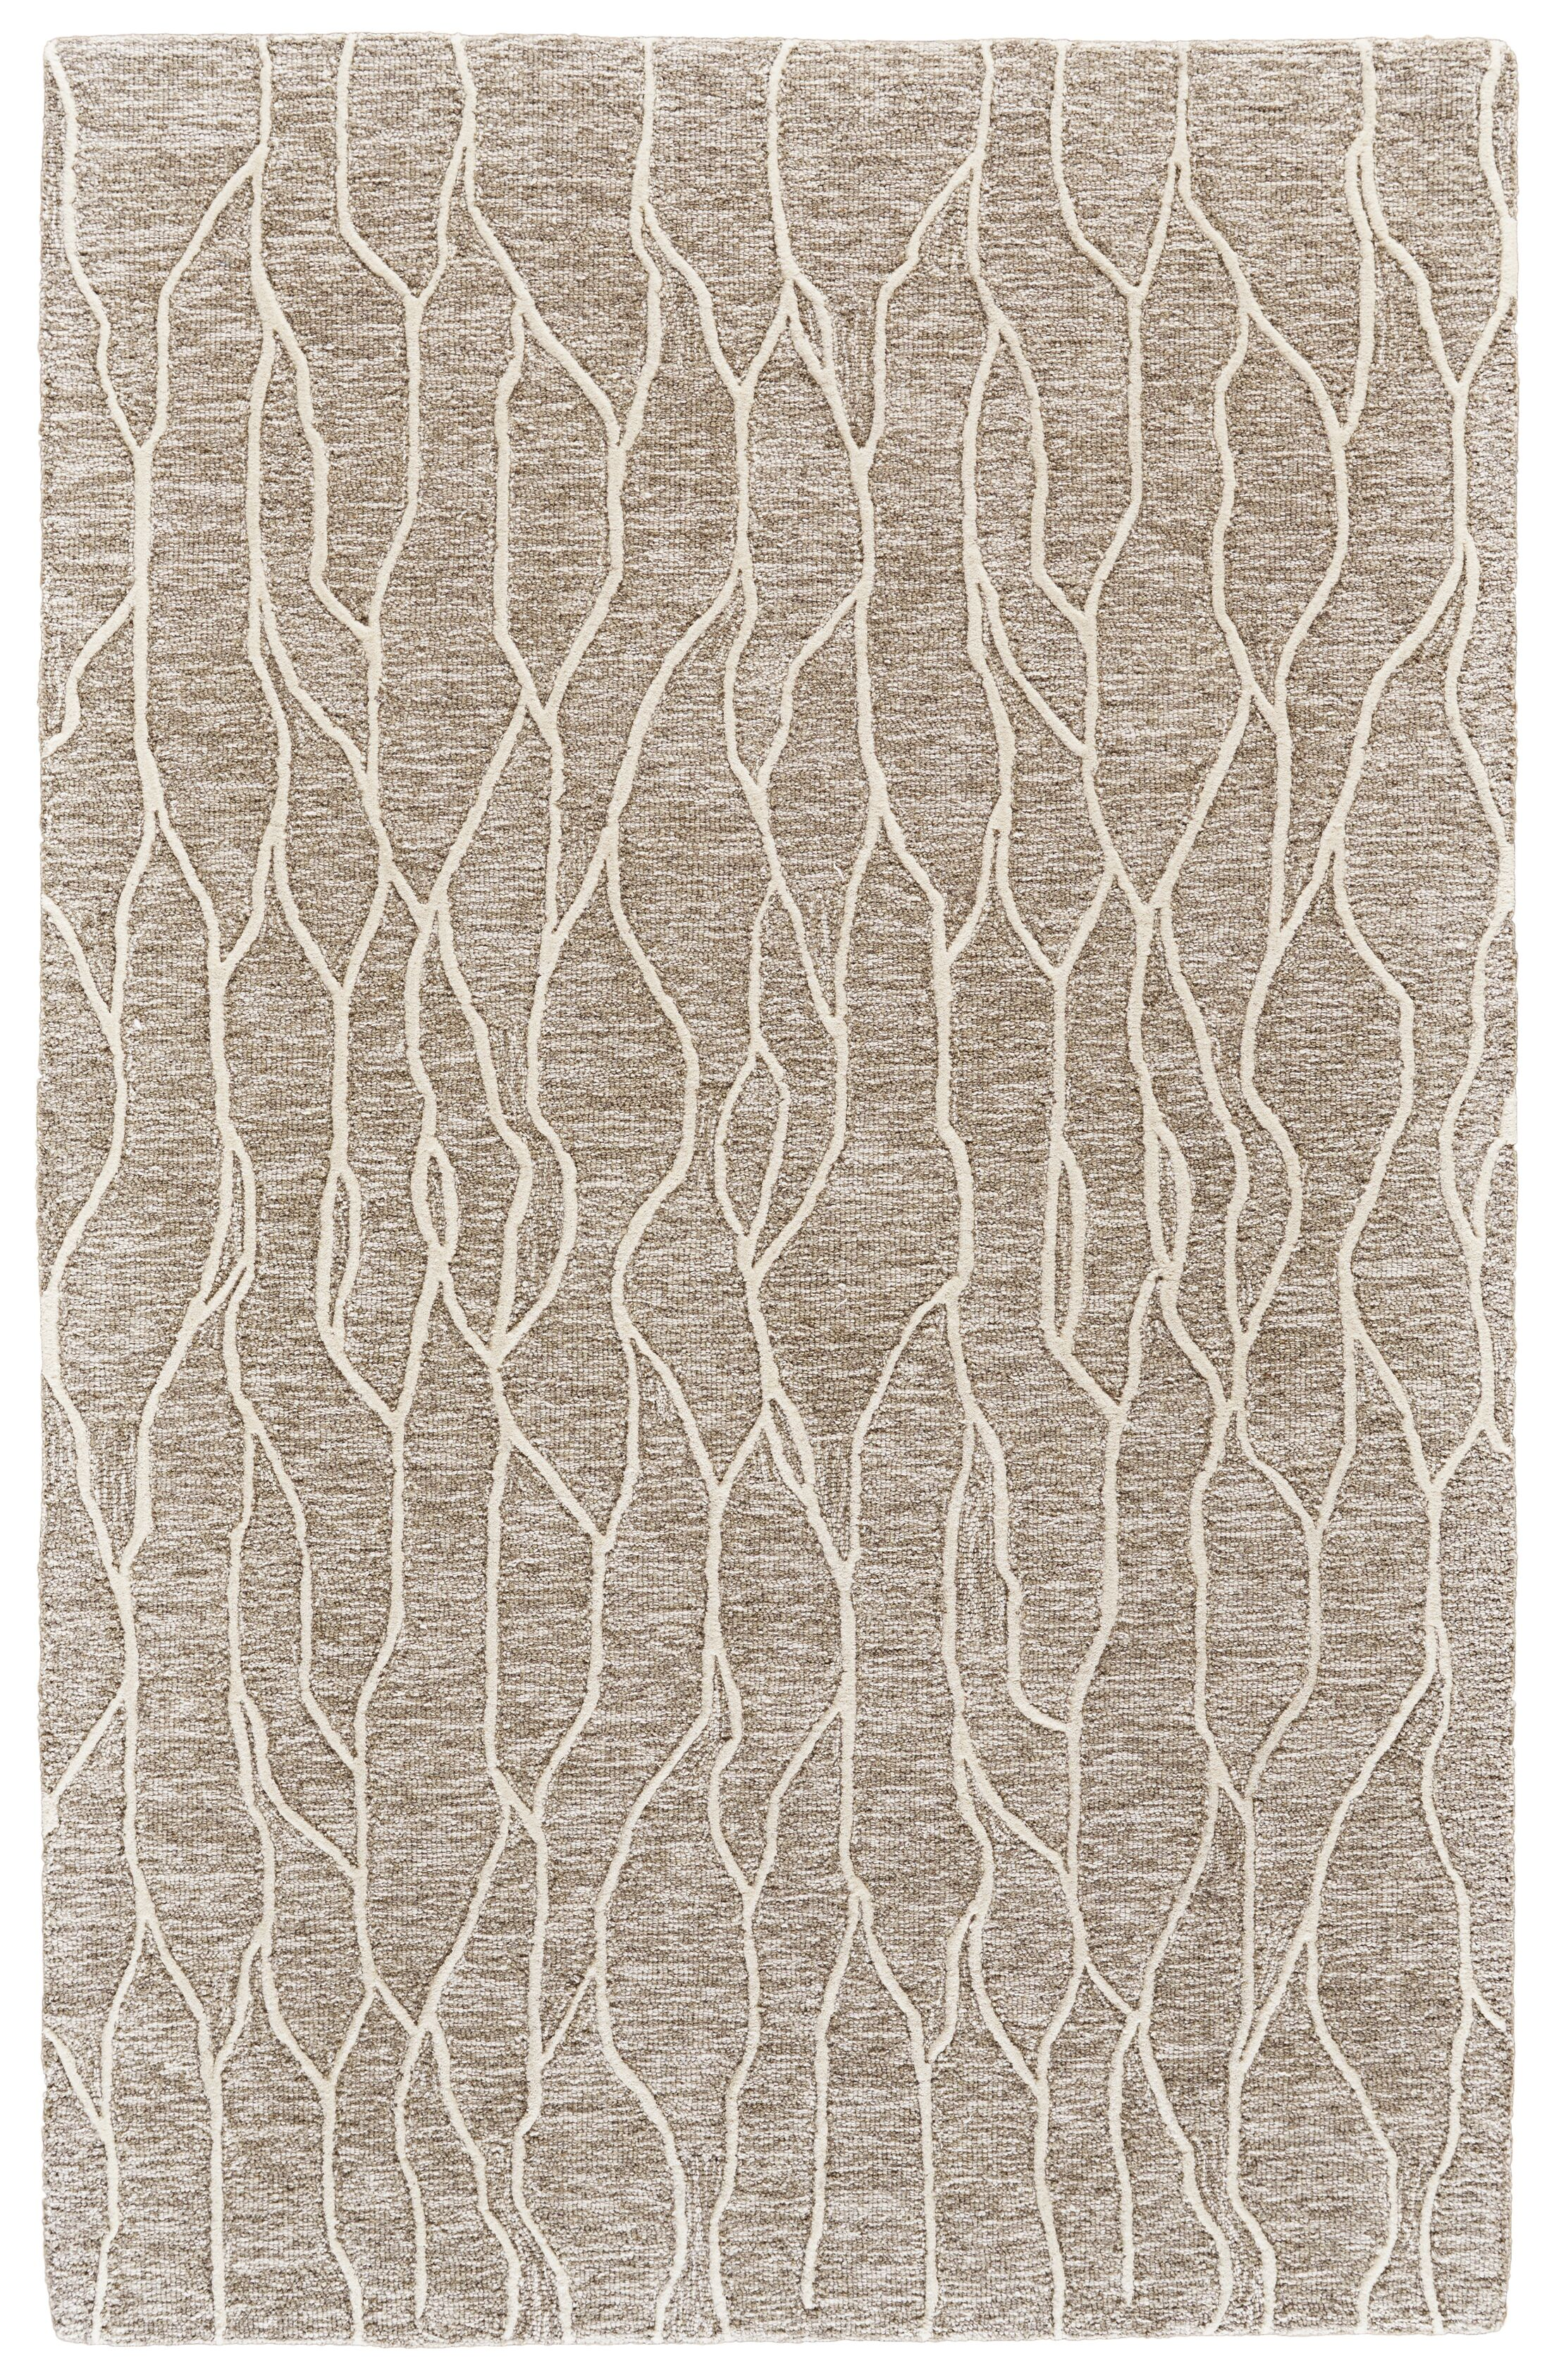 Grider Hand-Tufted Wool Ivory/Gray Area Rug Rug Size: Rectangle 3'6